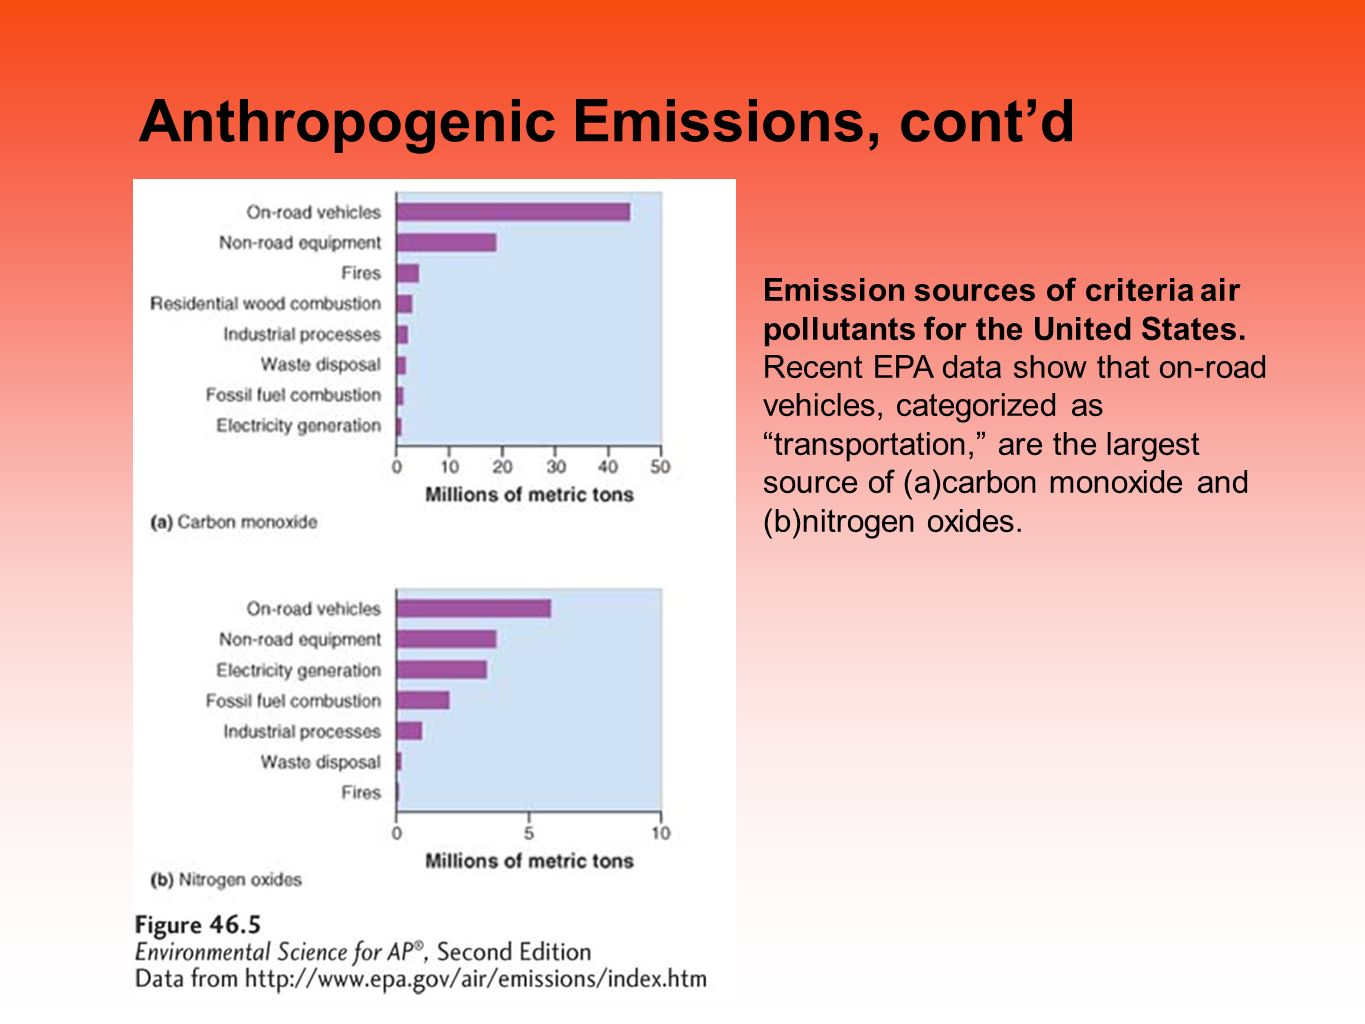 the anthropogenic effects of pollutants Some of the specific types of anthropogenic pollutants are carbon monoxide, nitrogen oxide, sulfur dioxide, volatile organic compounds, and particulate matter carbon monoxide is very harmful to the environment it is made by the incomplete combustion of fuels or other carbon-containing substances.